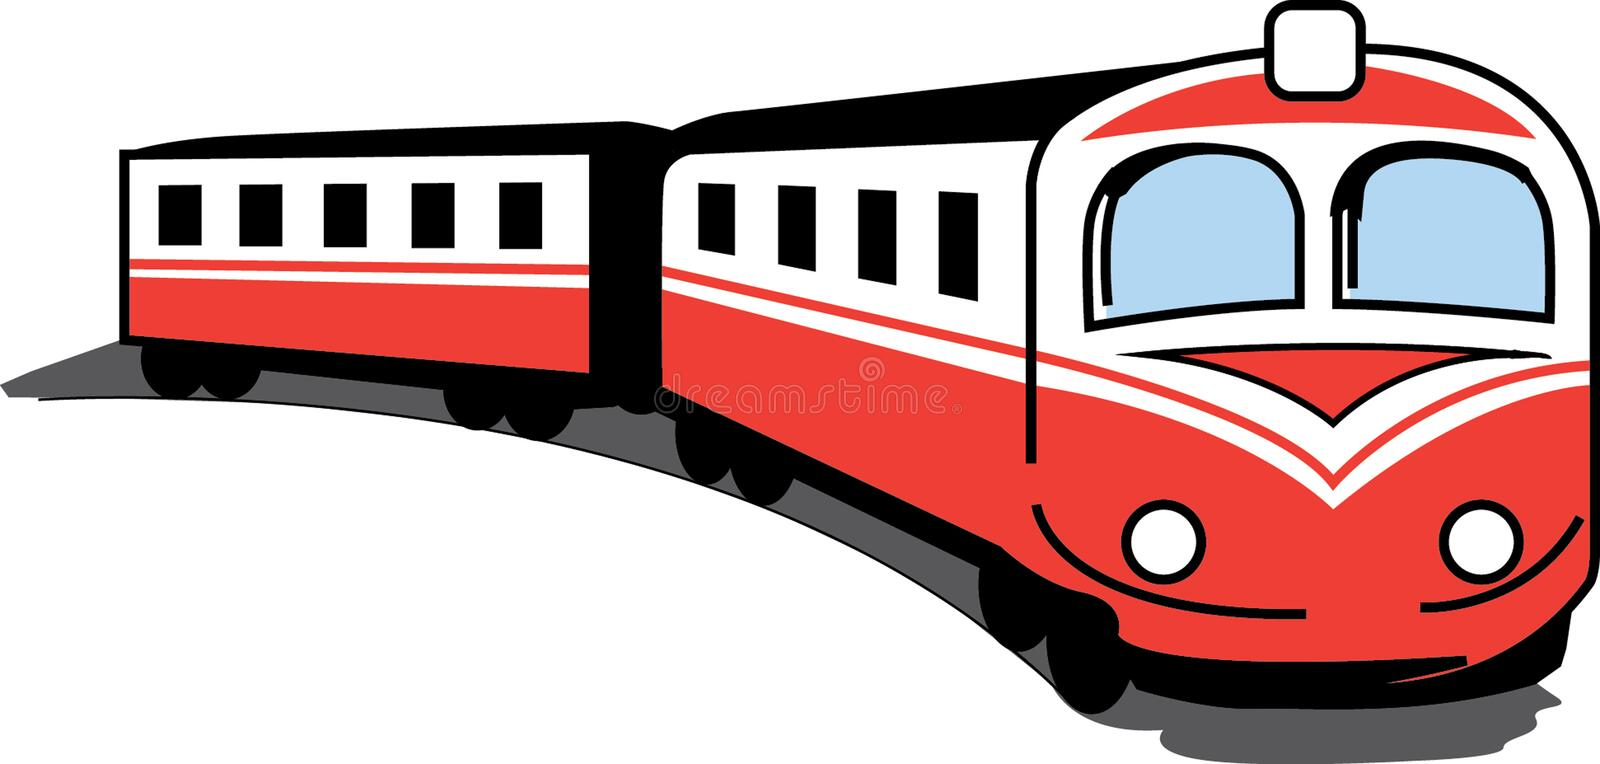 Small red train royalty free stock images